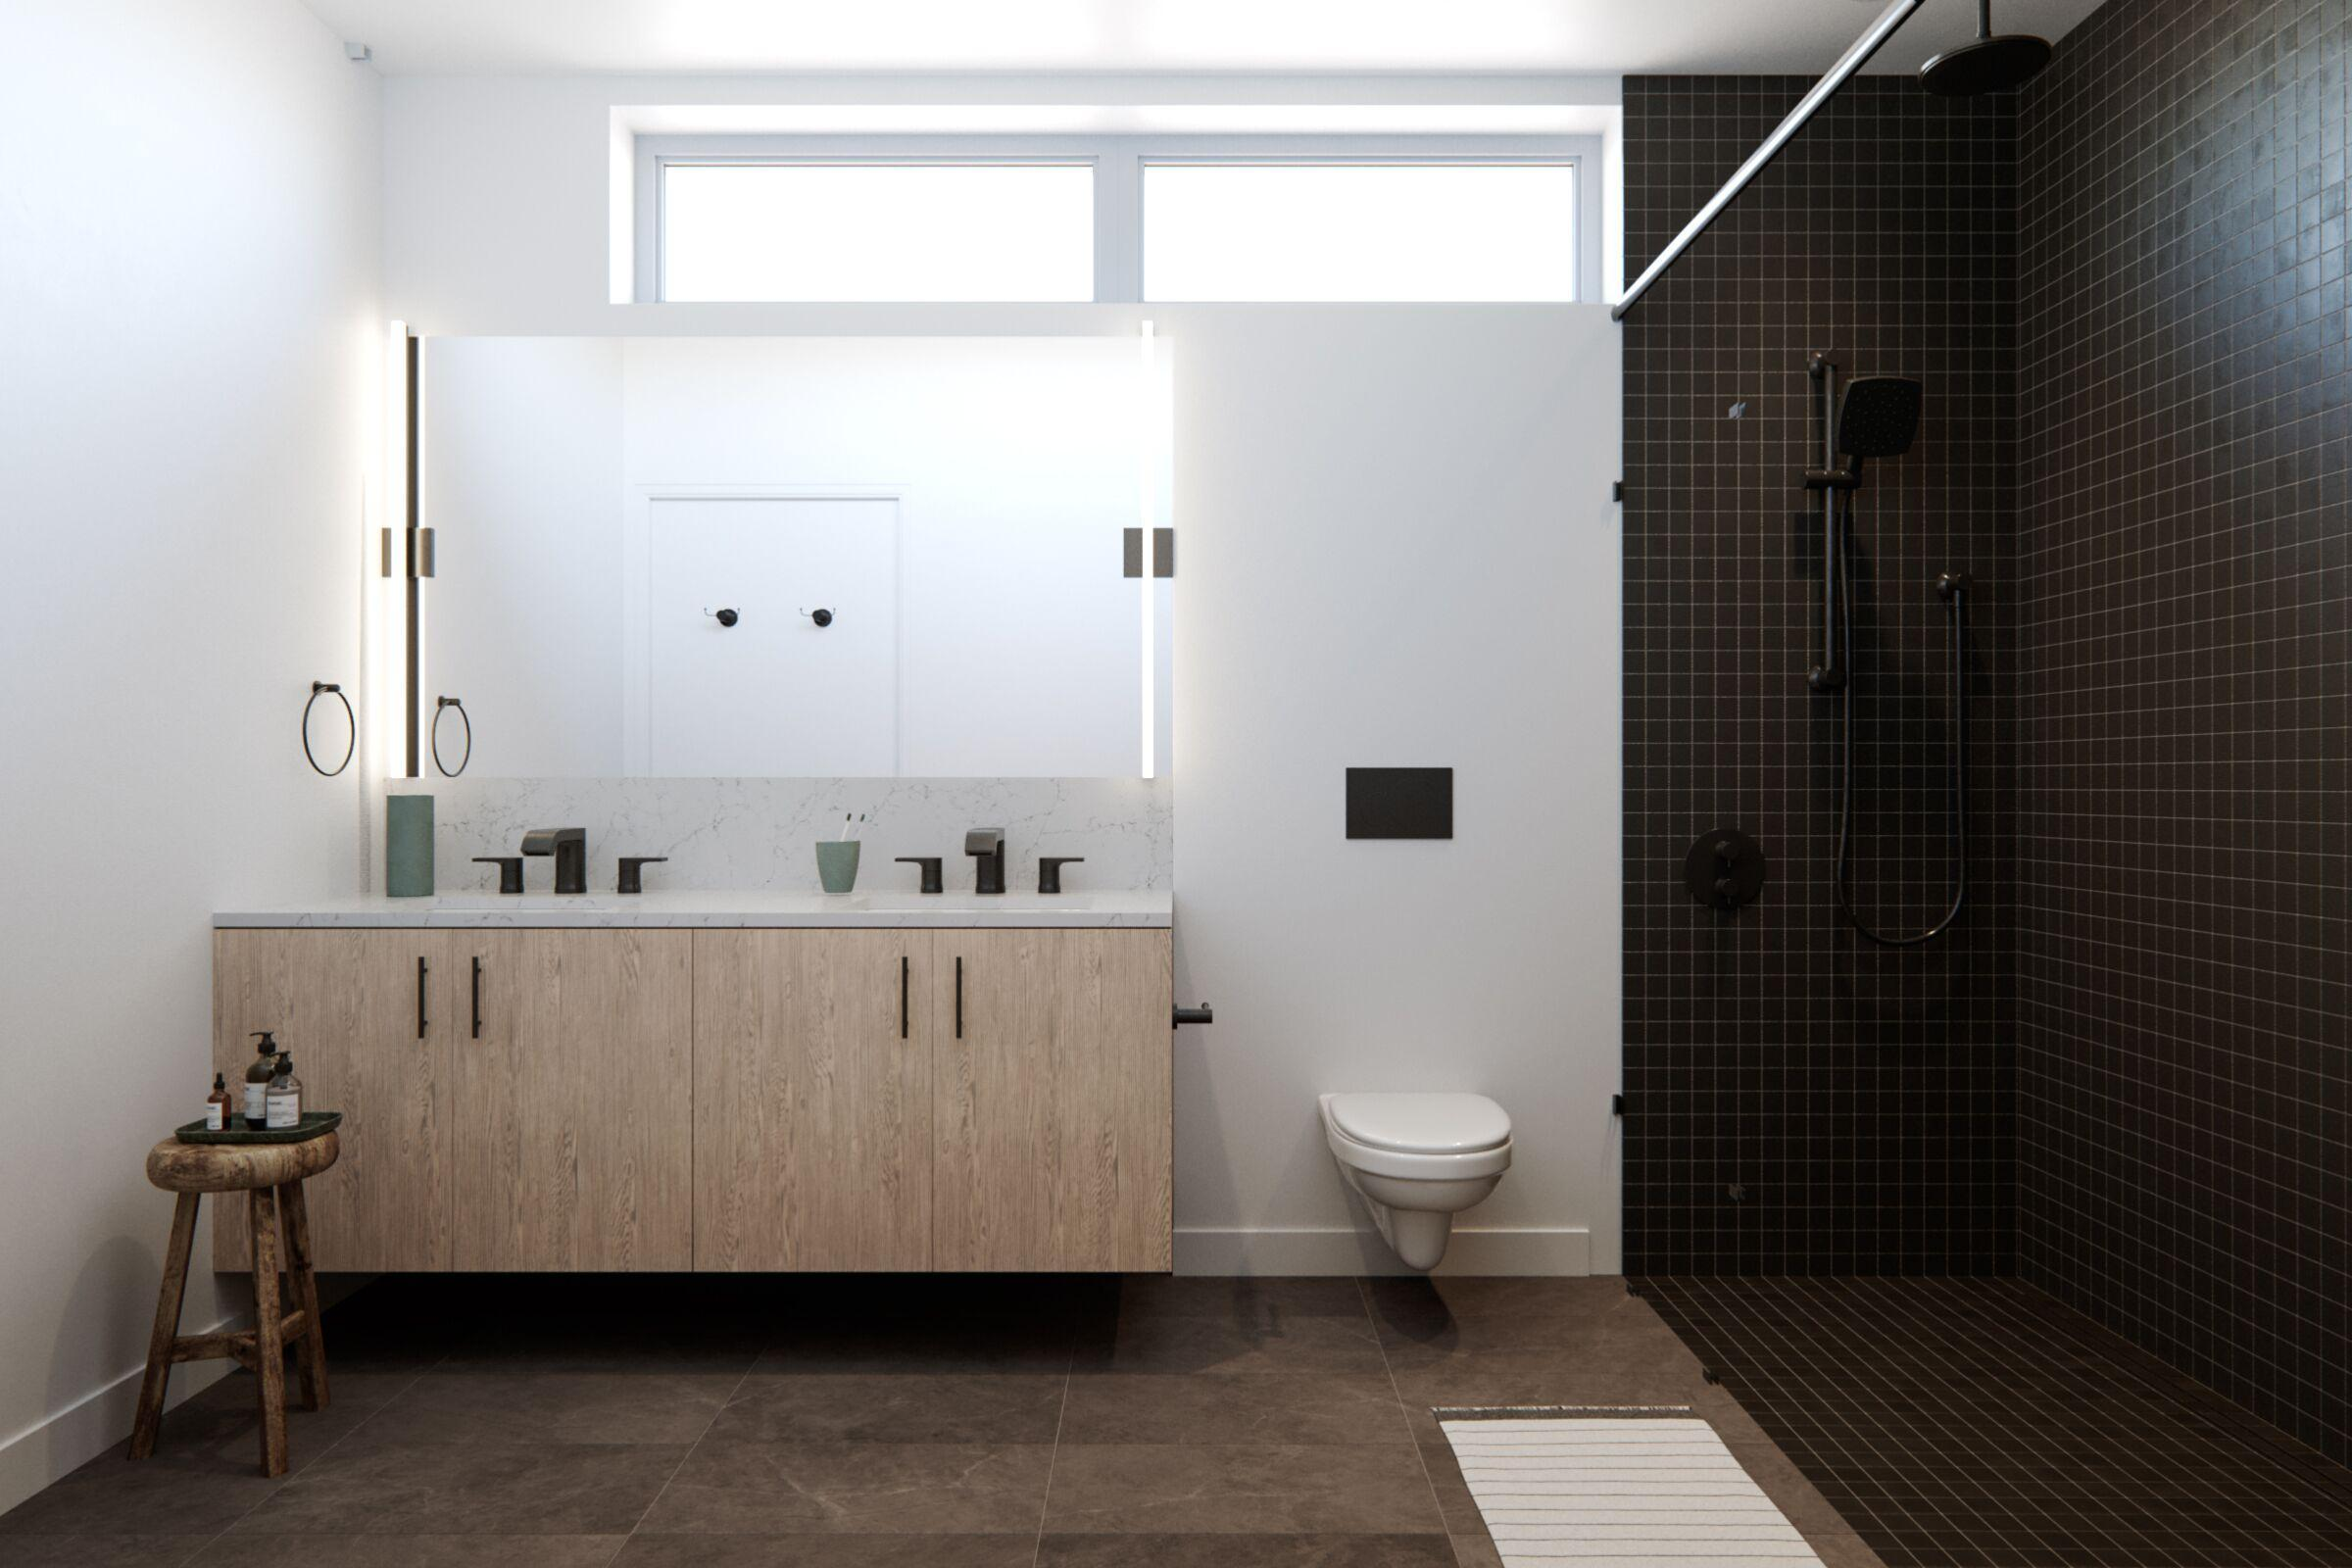 Bathroom featured in the Plan B-Fairfax at Sunset By RC Homes Inc in Los Angeles, CA